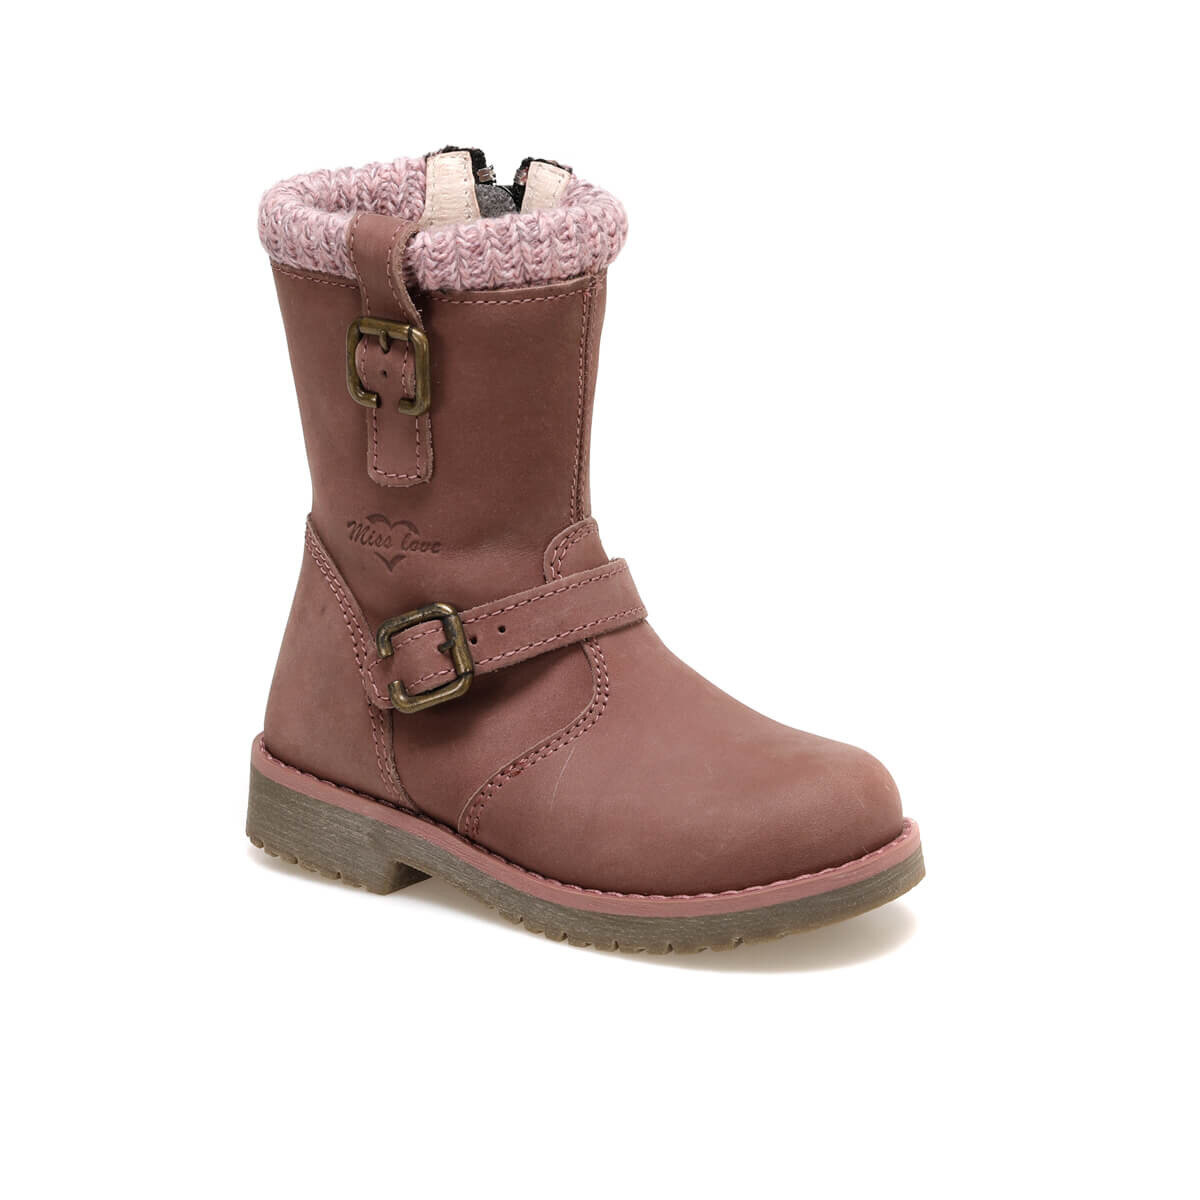 FLO 2833D31-M Damson Female Child Boots Kifidis